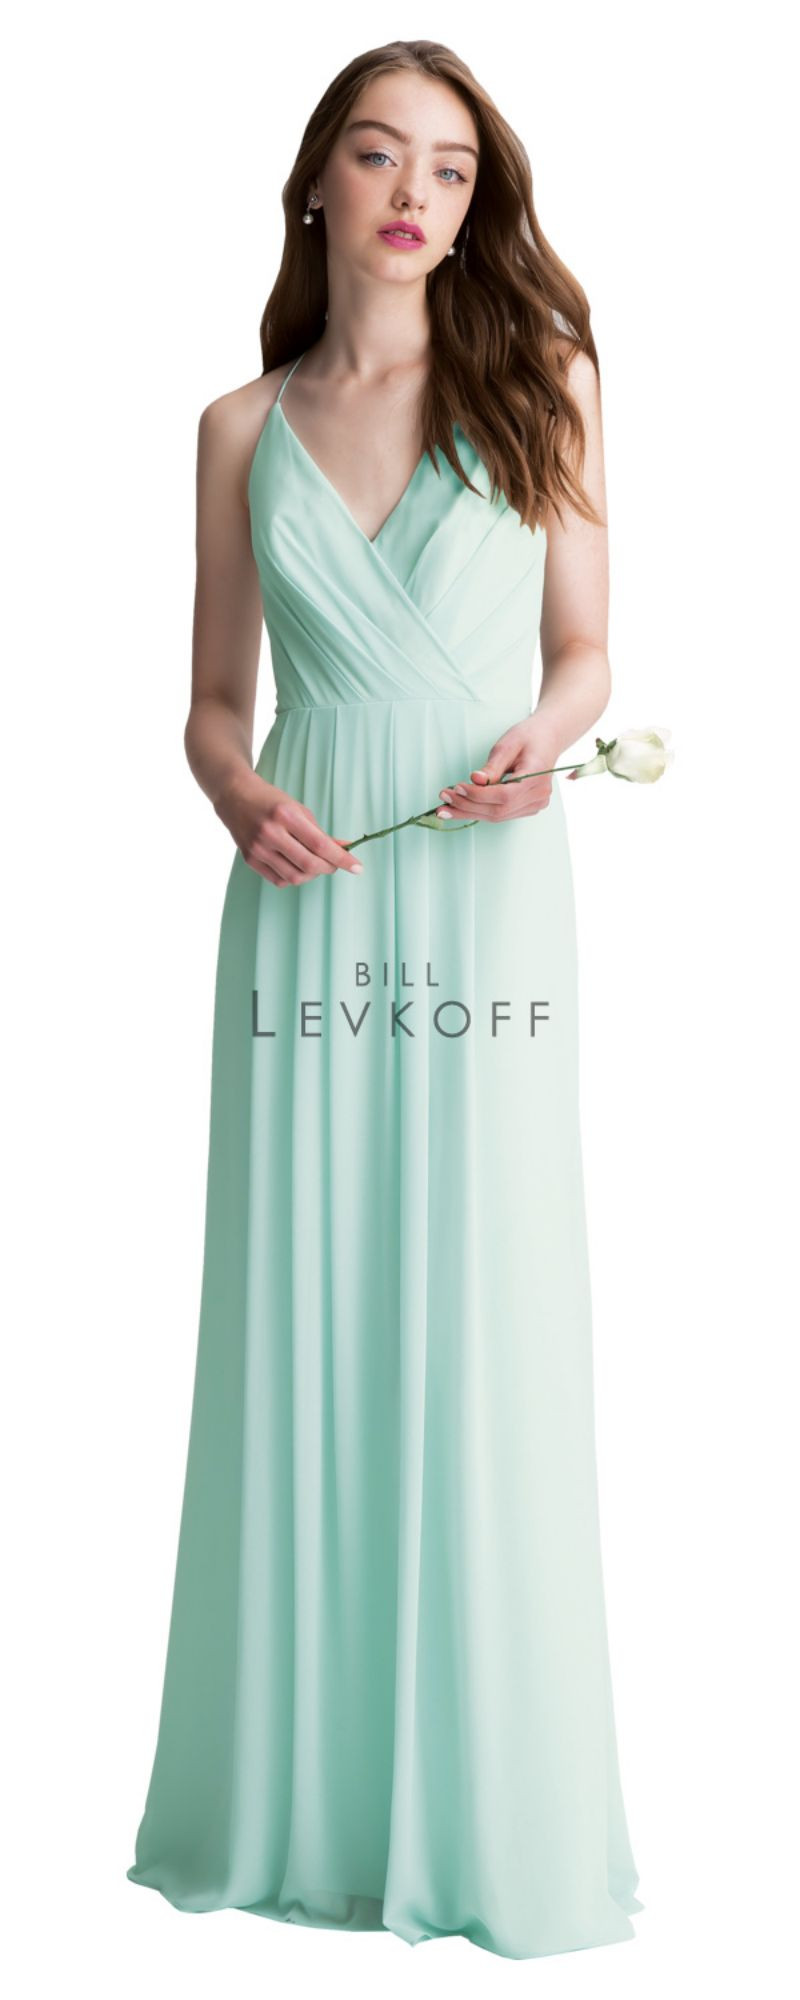 Bill Levkoff Bridesmaid Dresses | Inexpensive Bridesmaid Dresses ...